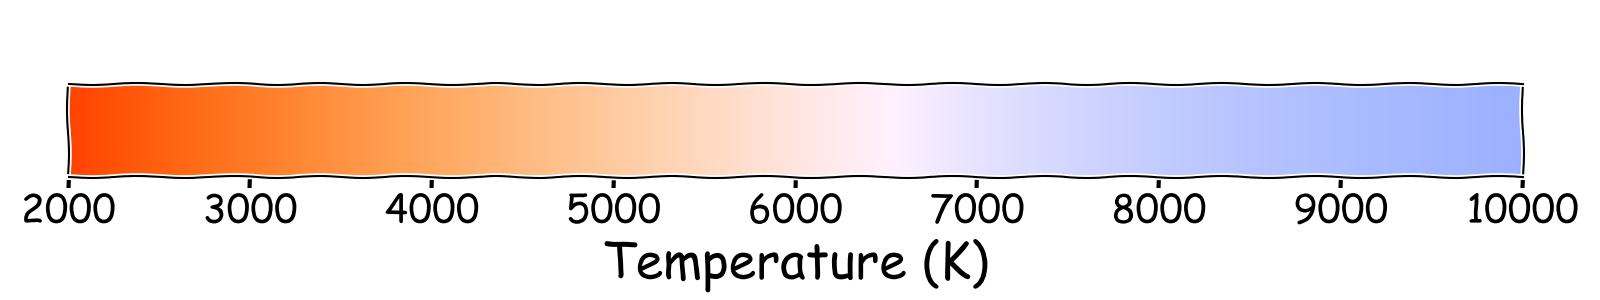 Star colour versus temperature